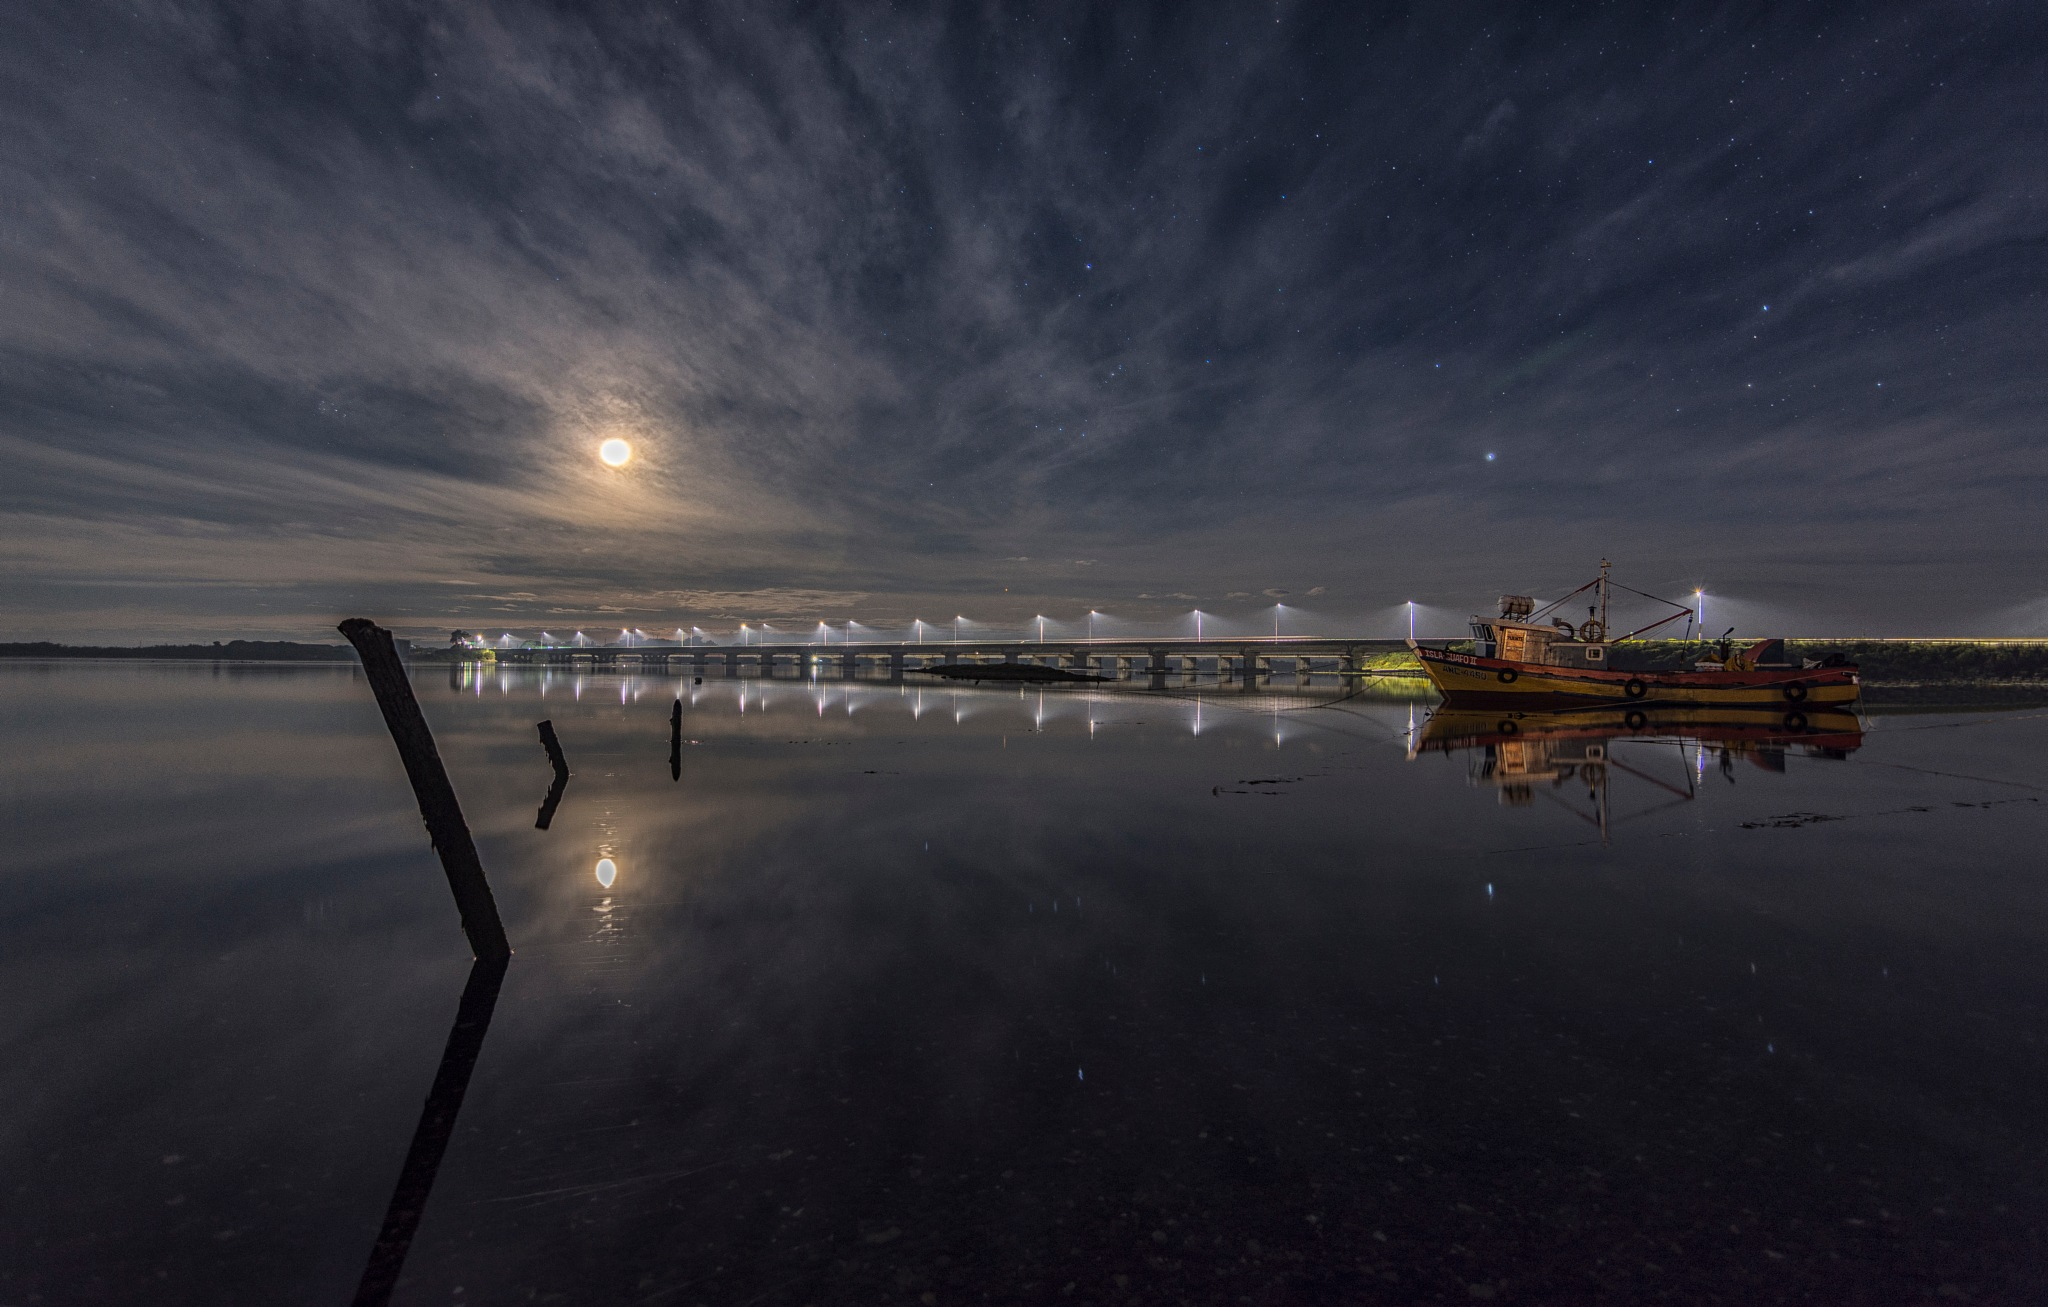 The fisherman boat and the moon by julioreyesb